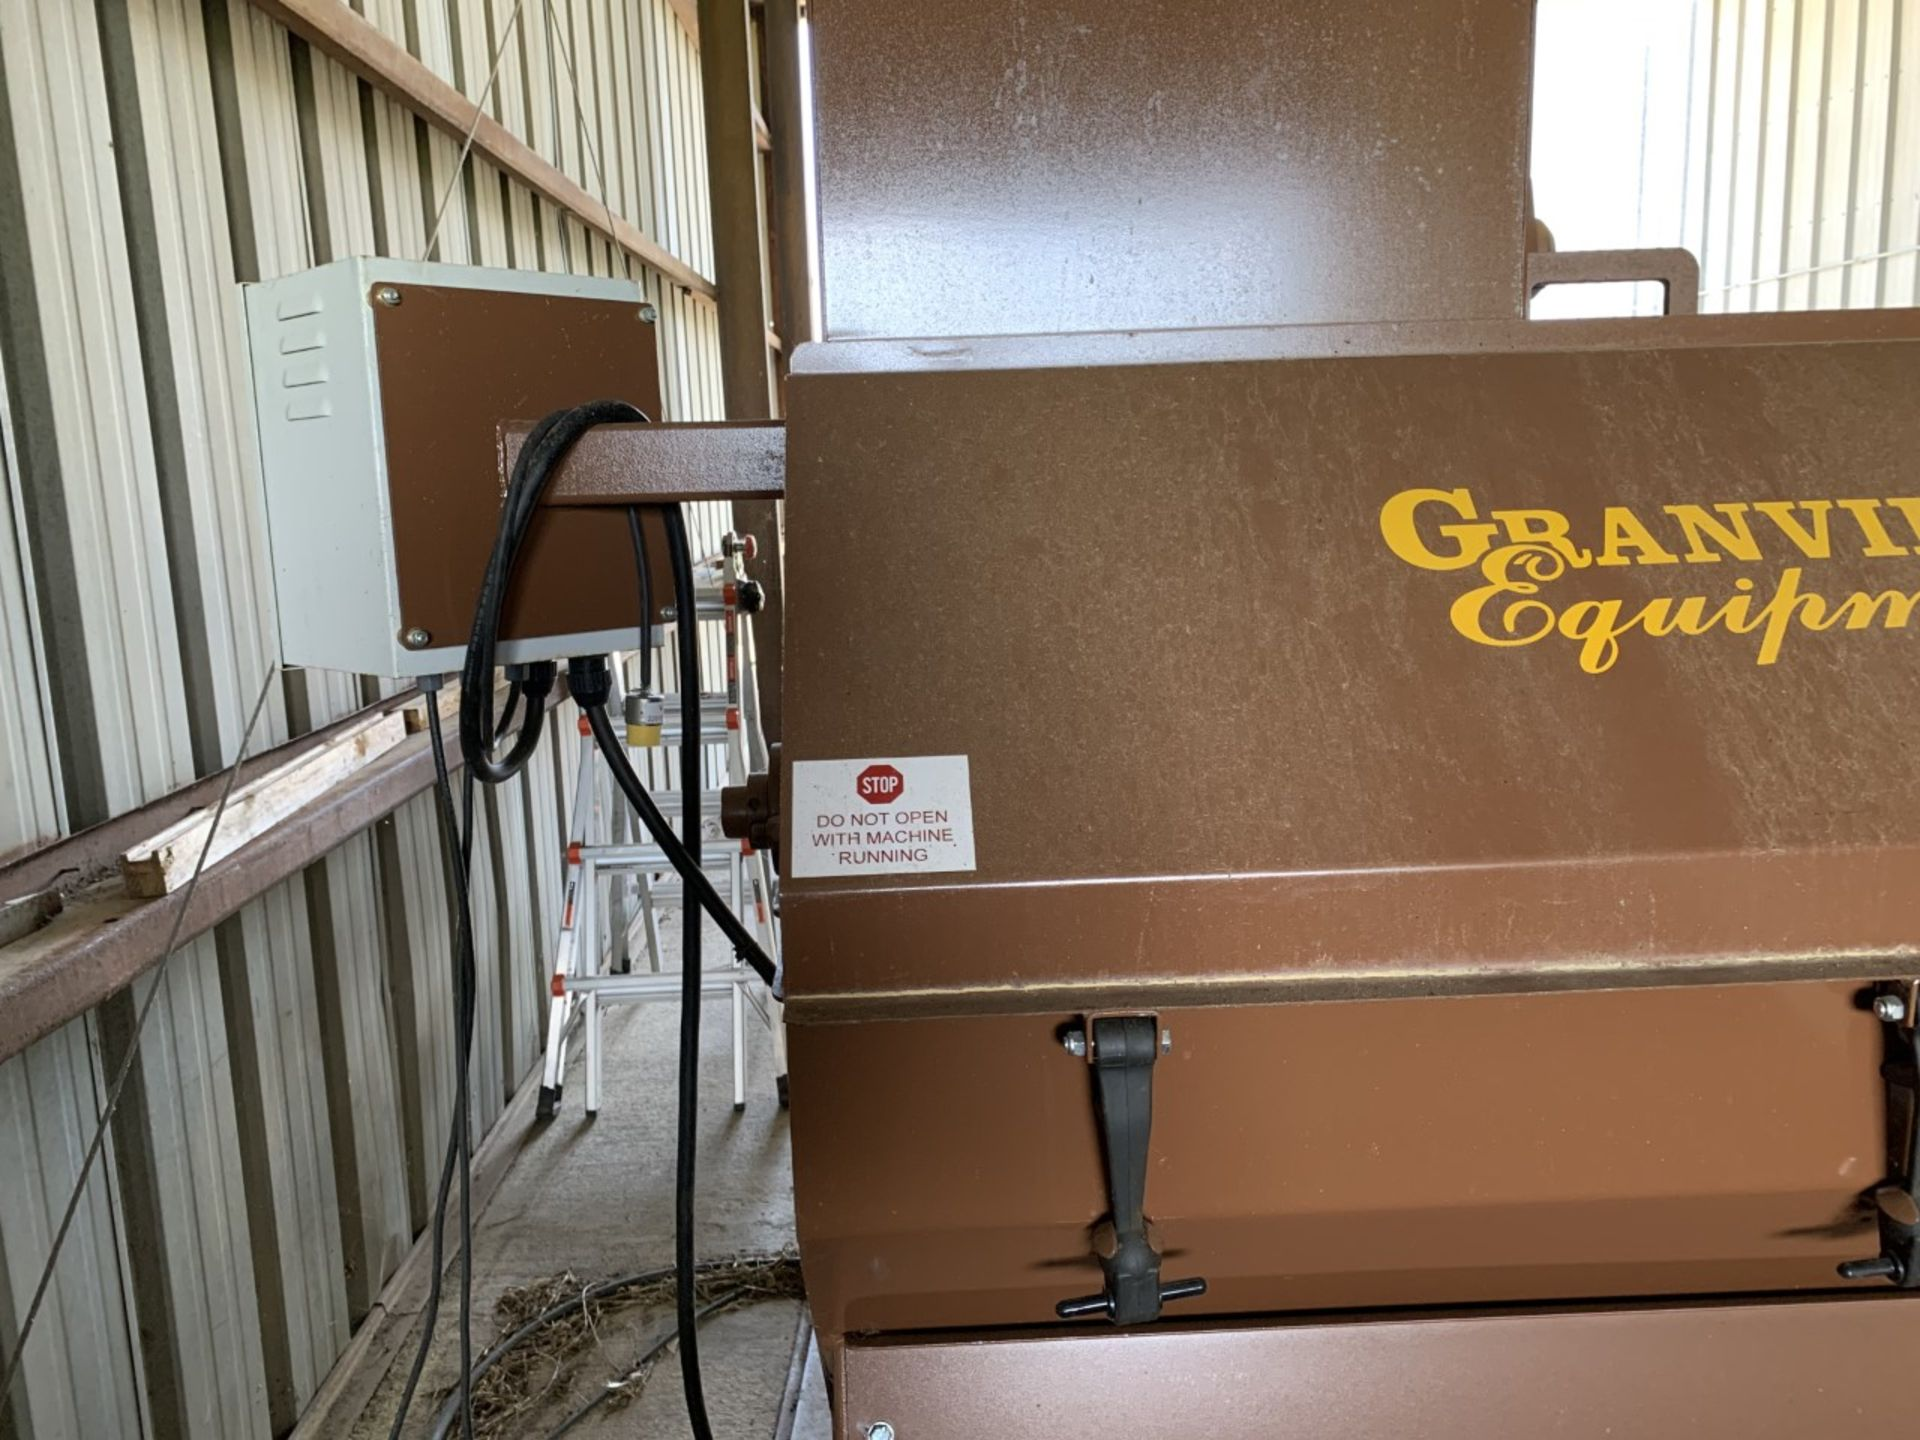 Used Granville Hemp Flower Extractor Includes: Hemp Flower Extractor w/ Vacuum & Conveying System - Image 4 of 17